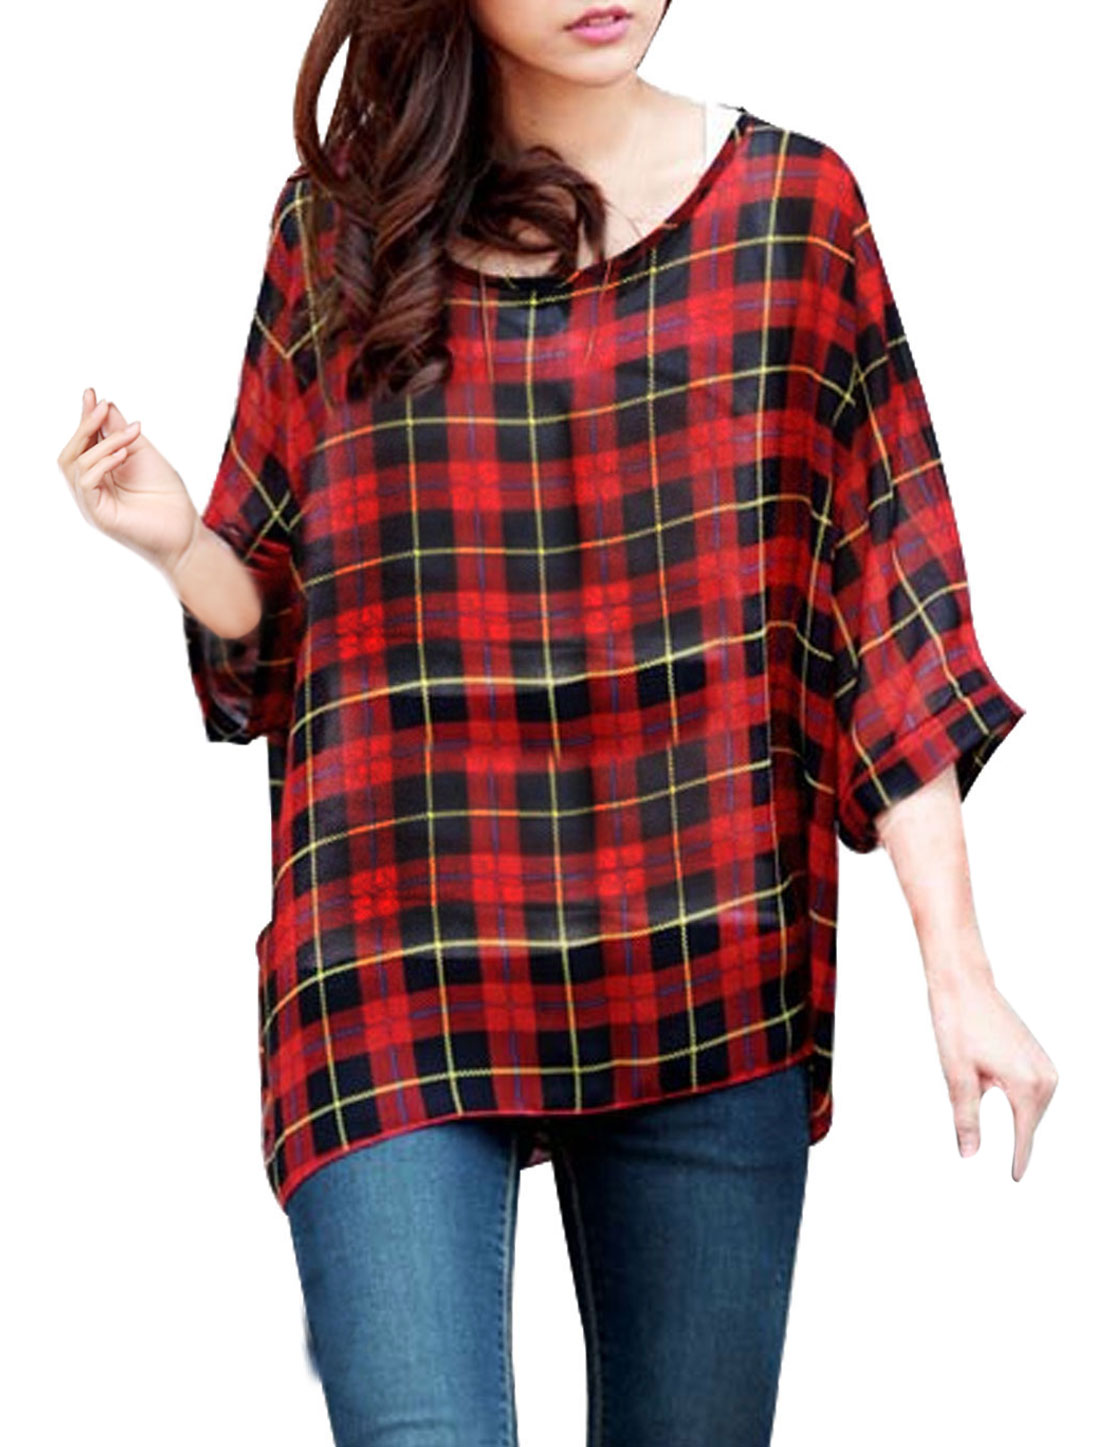 Women Batwing Sleeve Scoop Neck Check Print Semi Sheer Blouse Red Black S